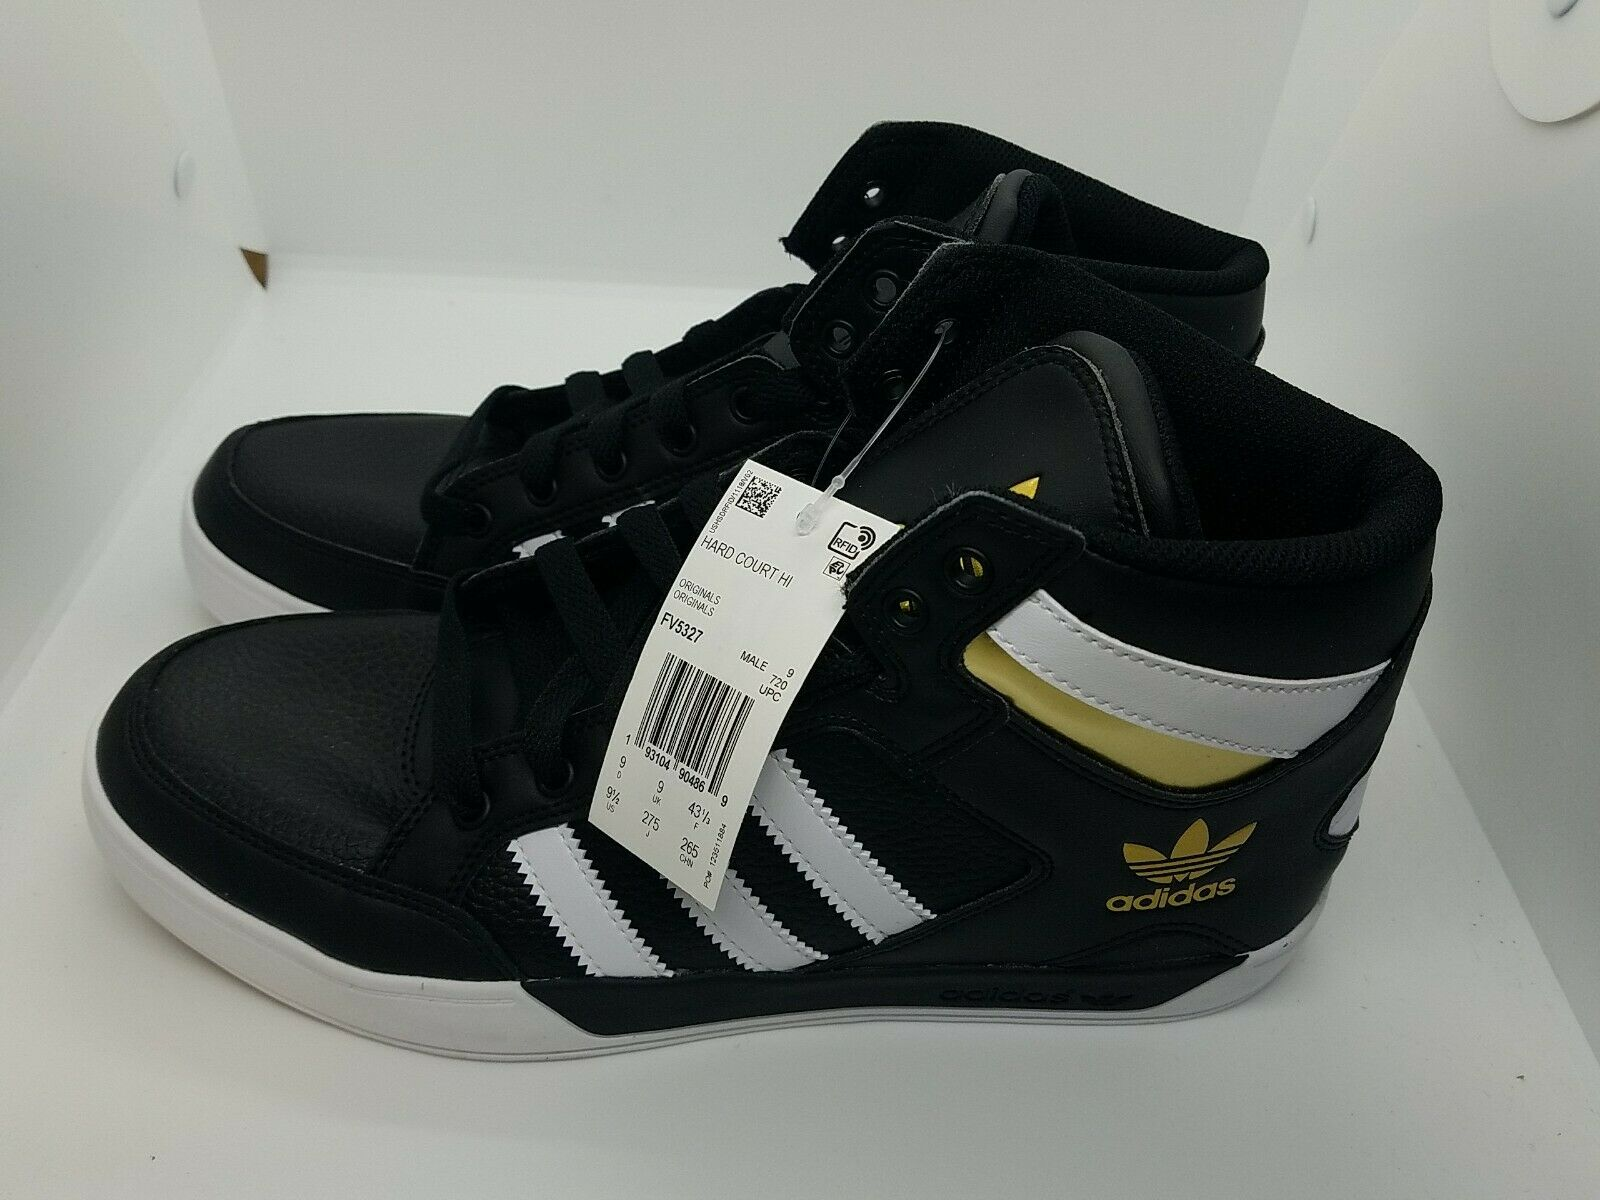 transfusión Papá Alinear  adidas Mens Hard Court Hi Big Logo Black/red /gold Athletic Shoes Size 9.5  for sale online | eBay